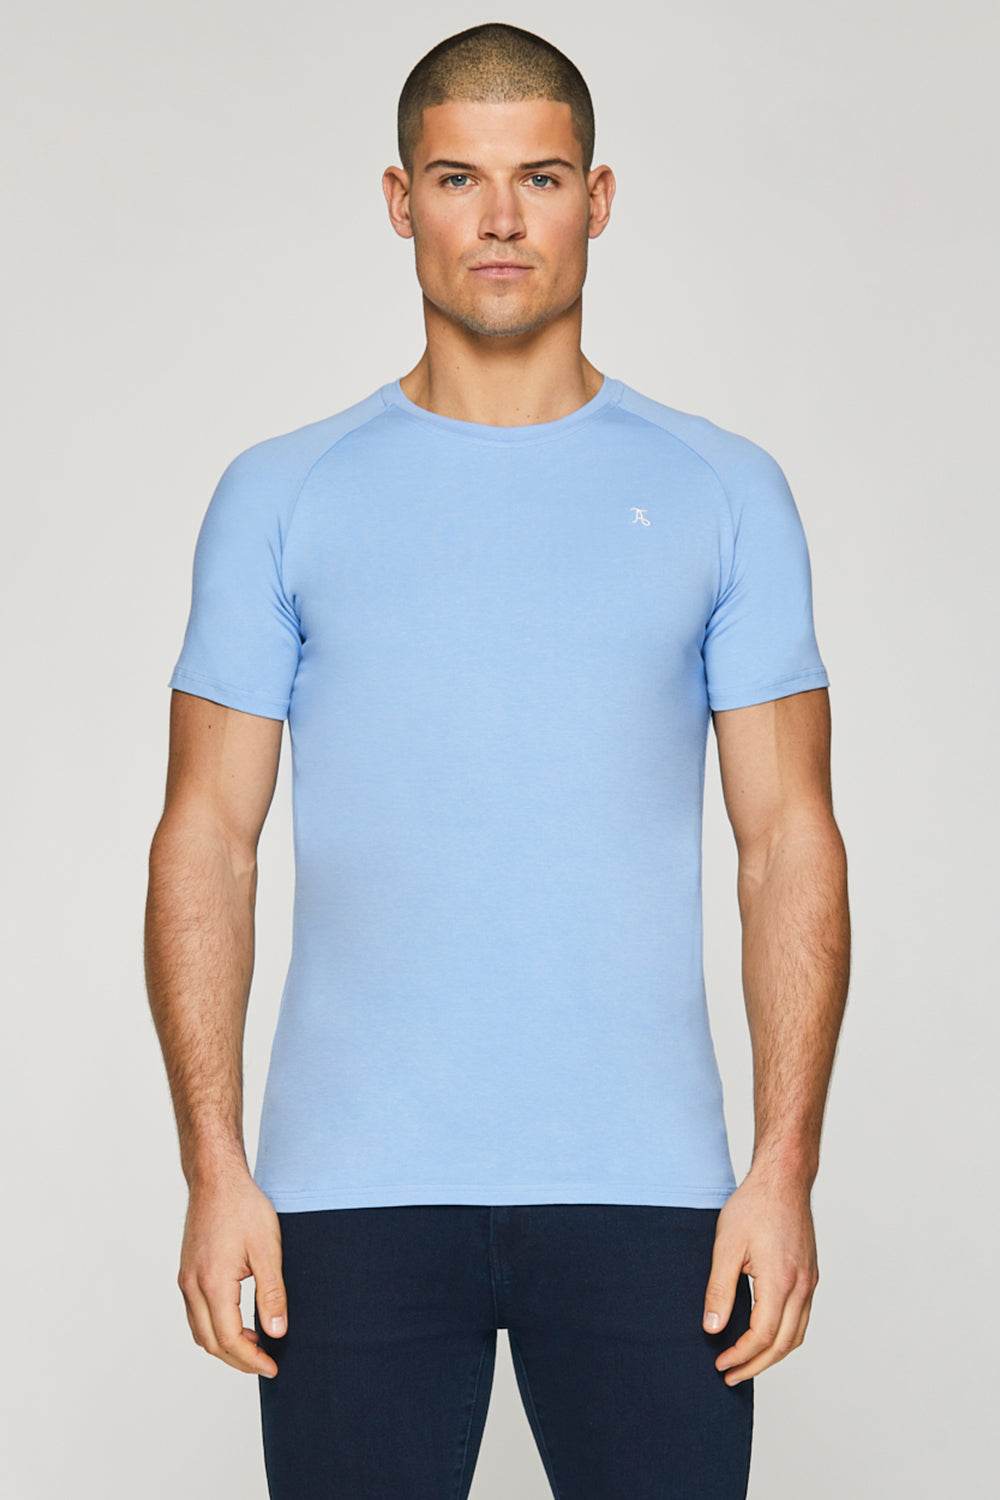 Essential T-Shirt in Blue Melange